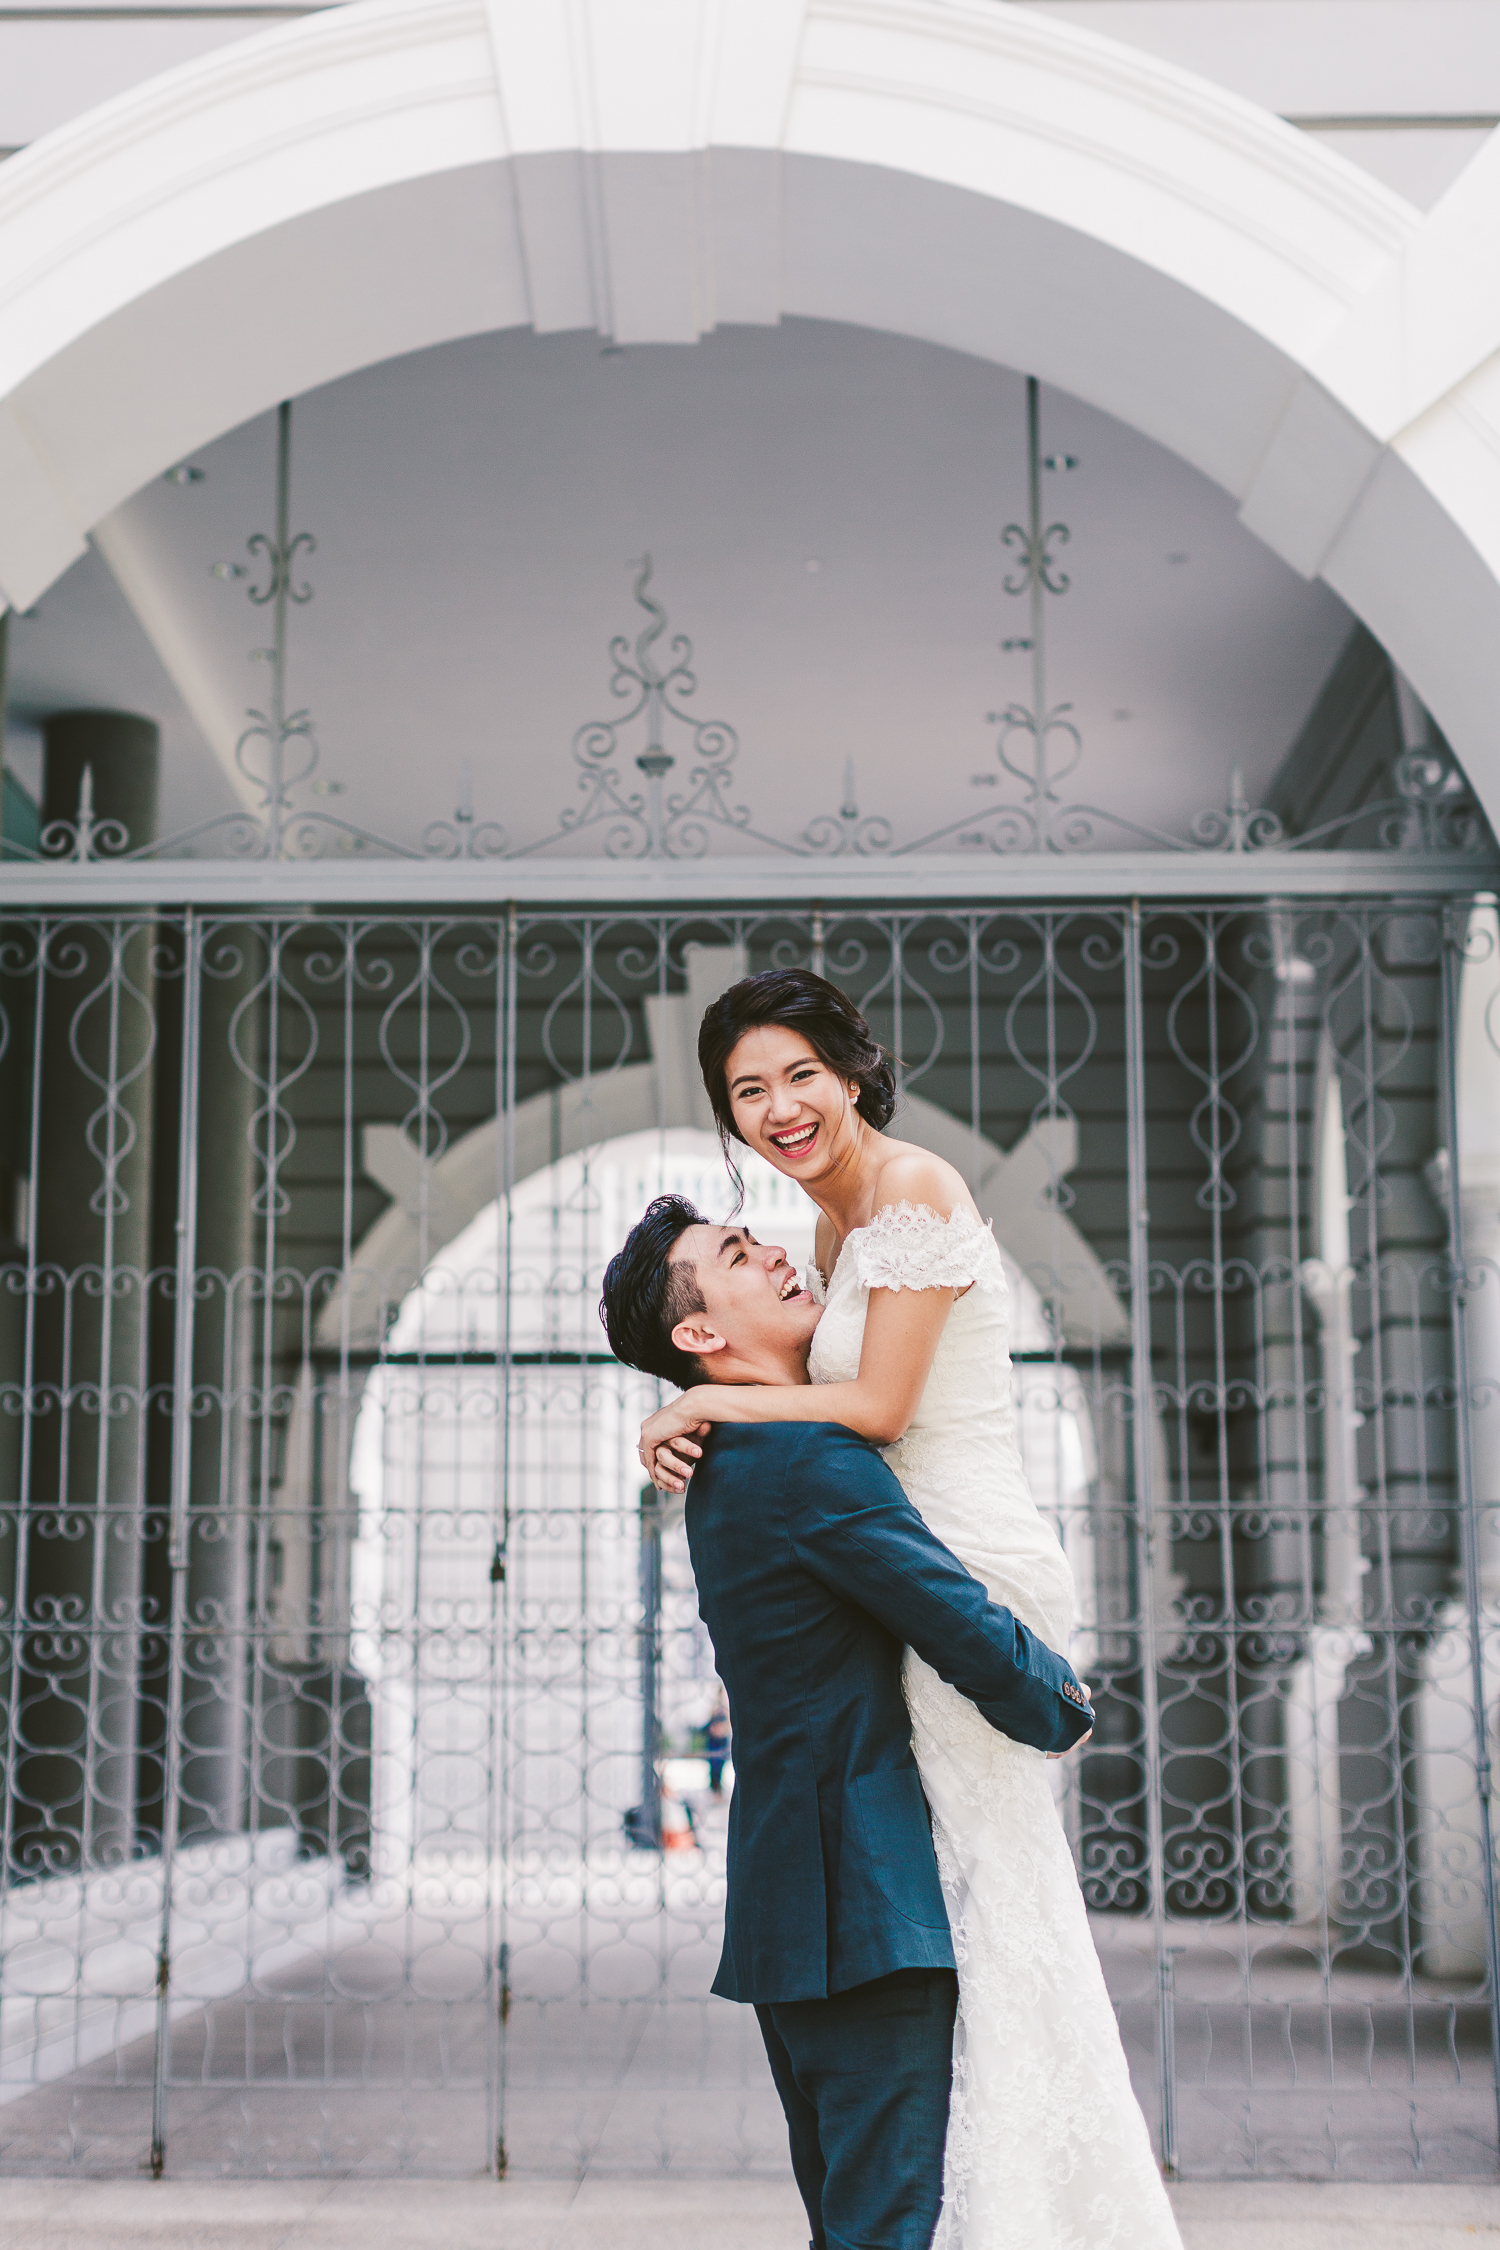 Singapore+Pre+Wedding+Photographer+Jeremiah+Christina-0011.jpg